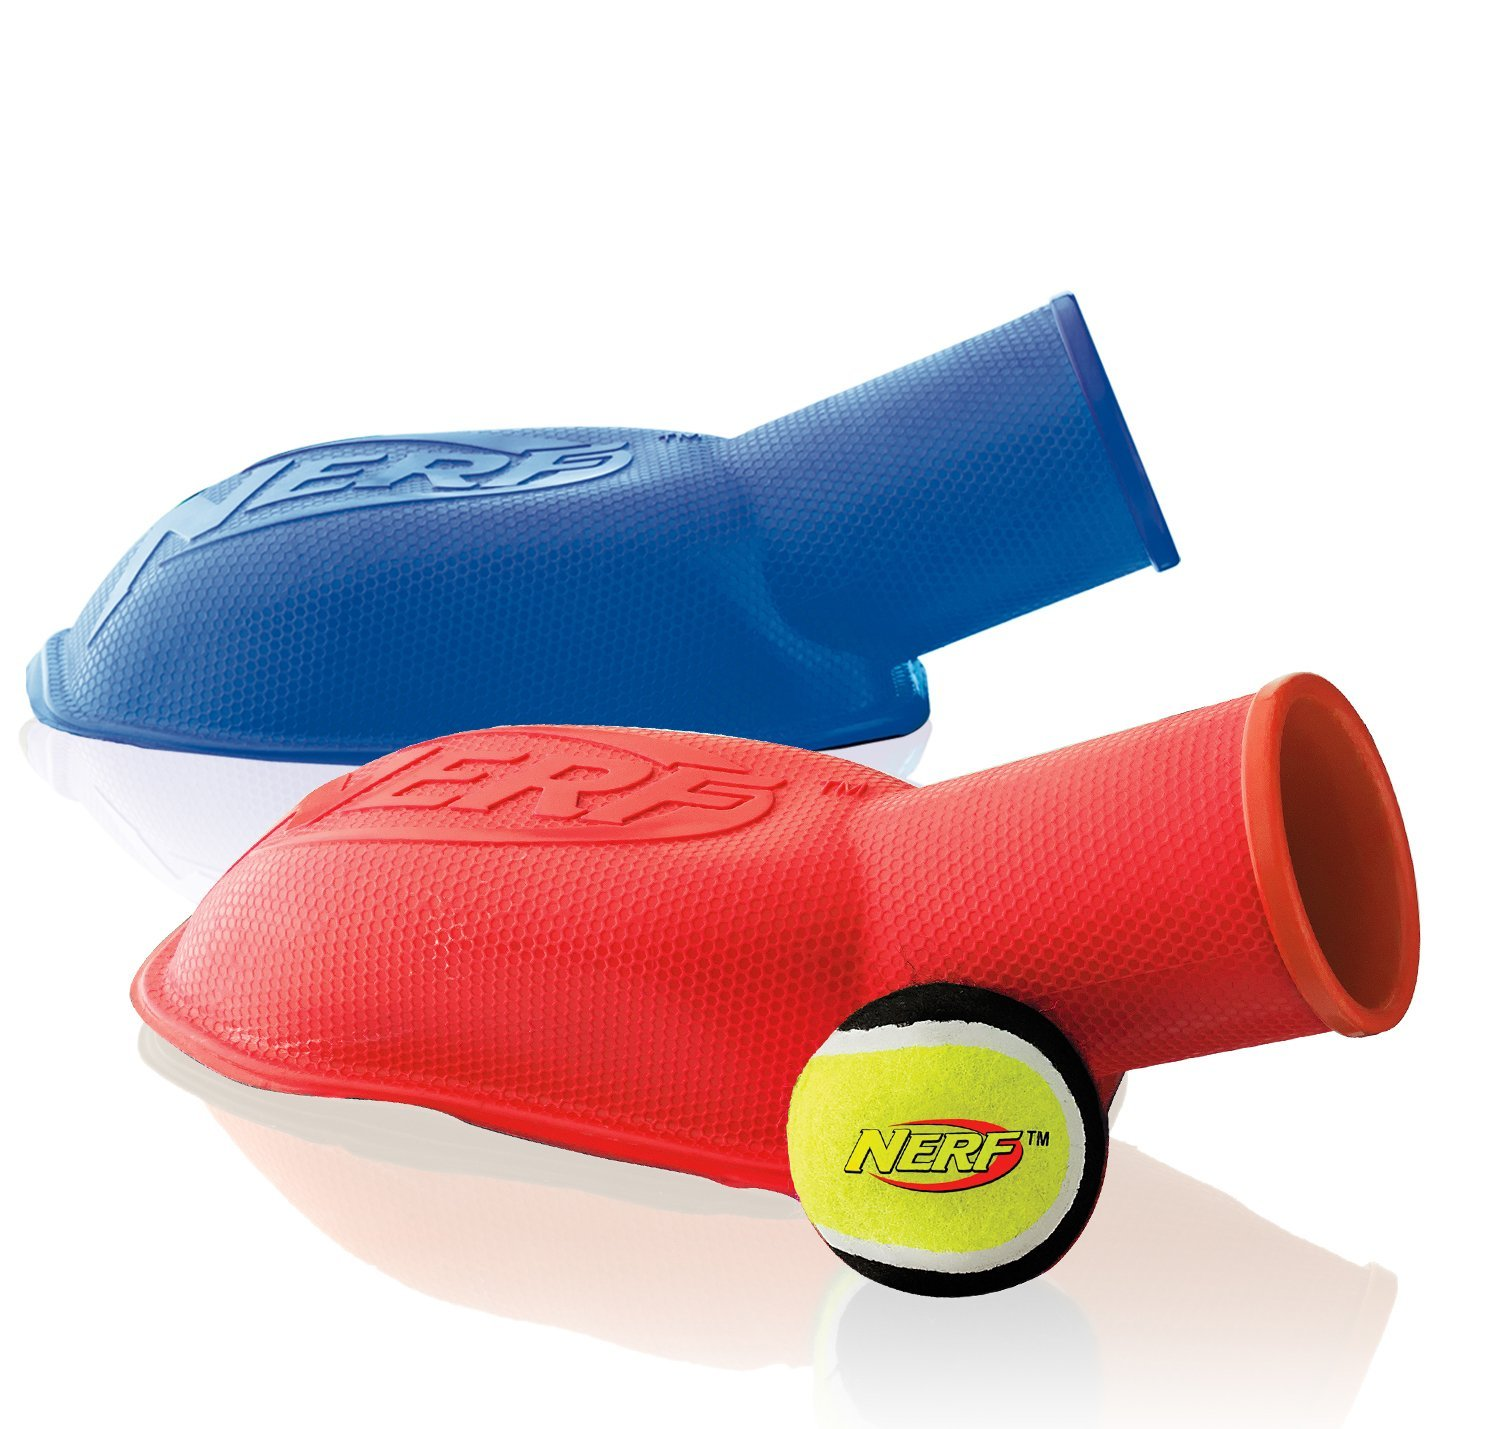 Nerf Dog Tennis Ball Stomp Launcher, 12-Inch, (2-Pack), Red and Blue